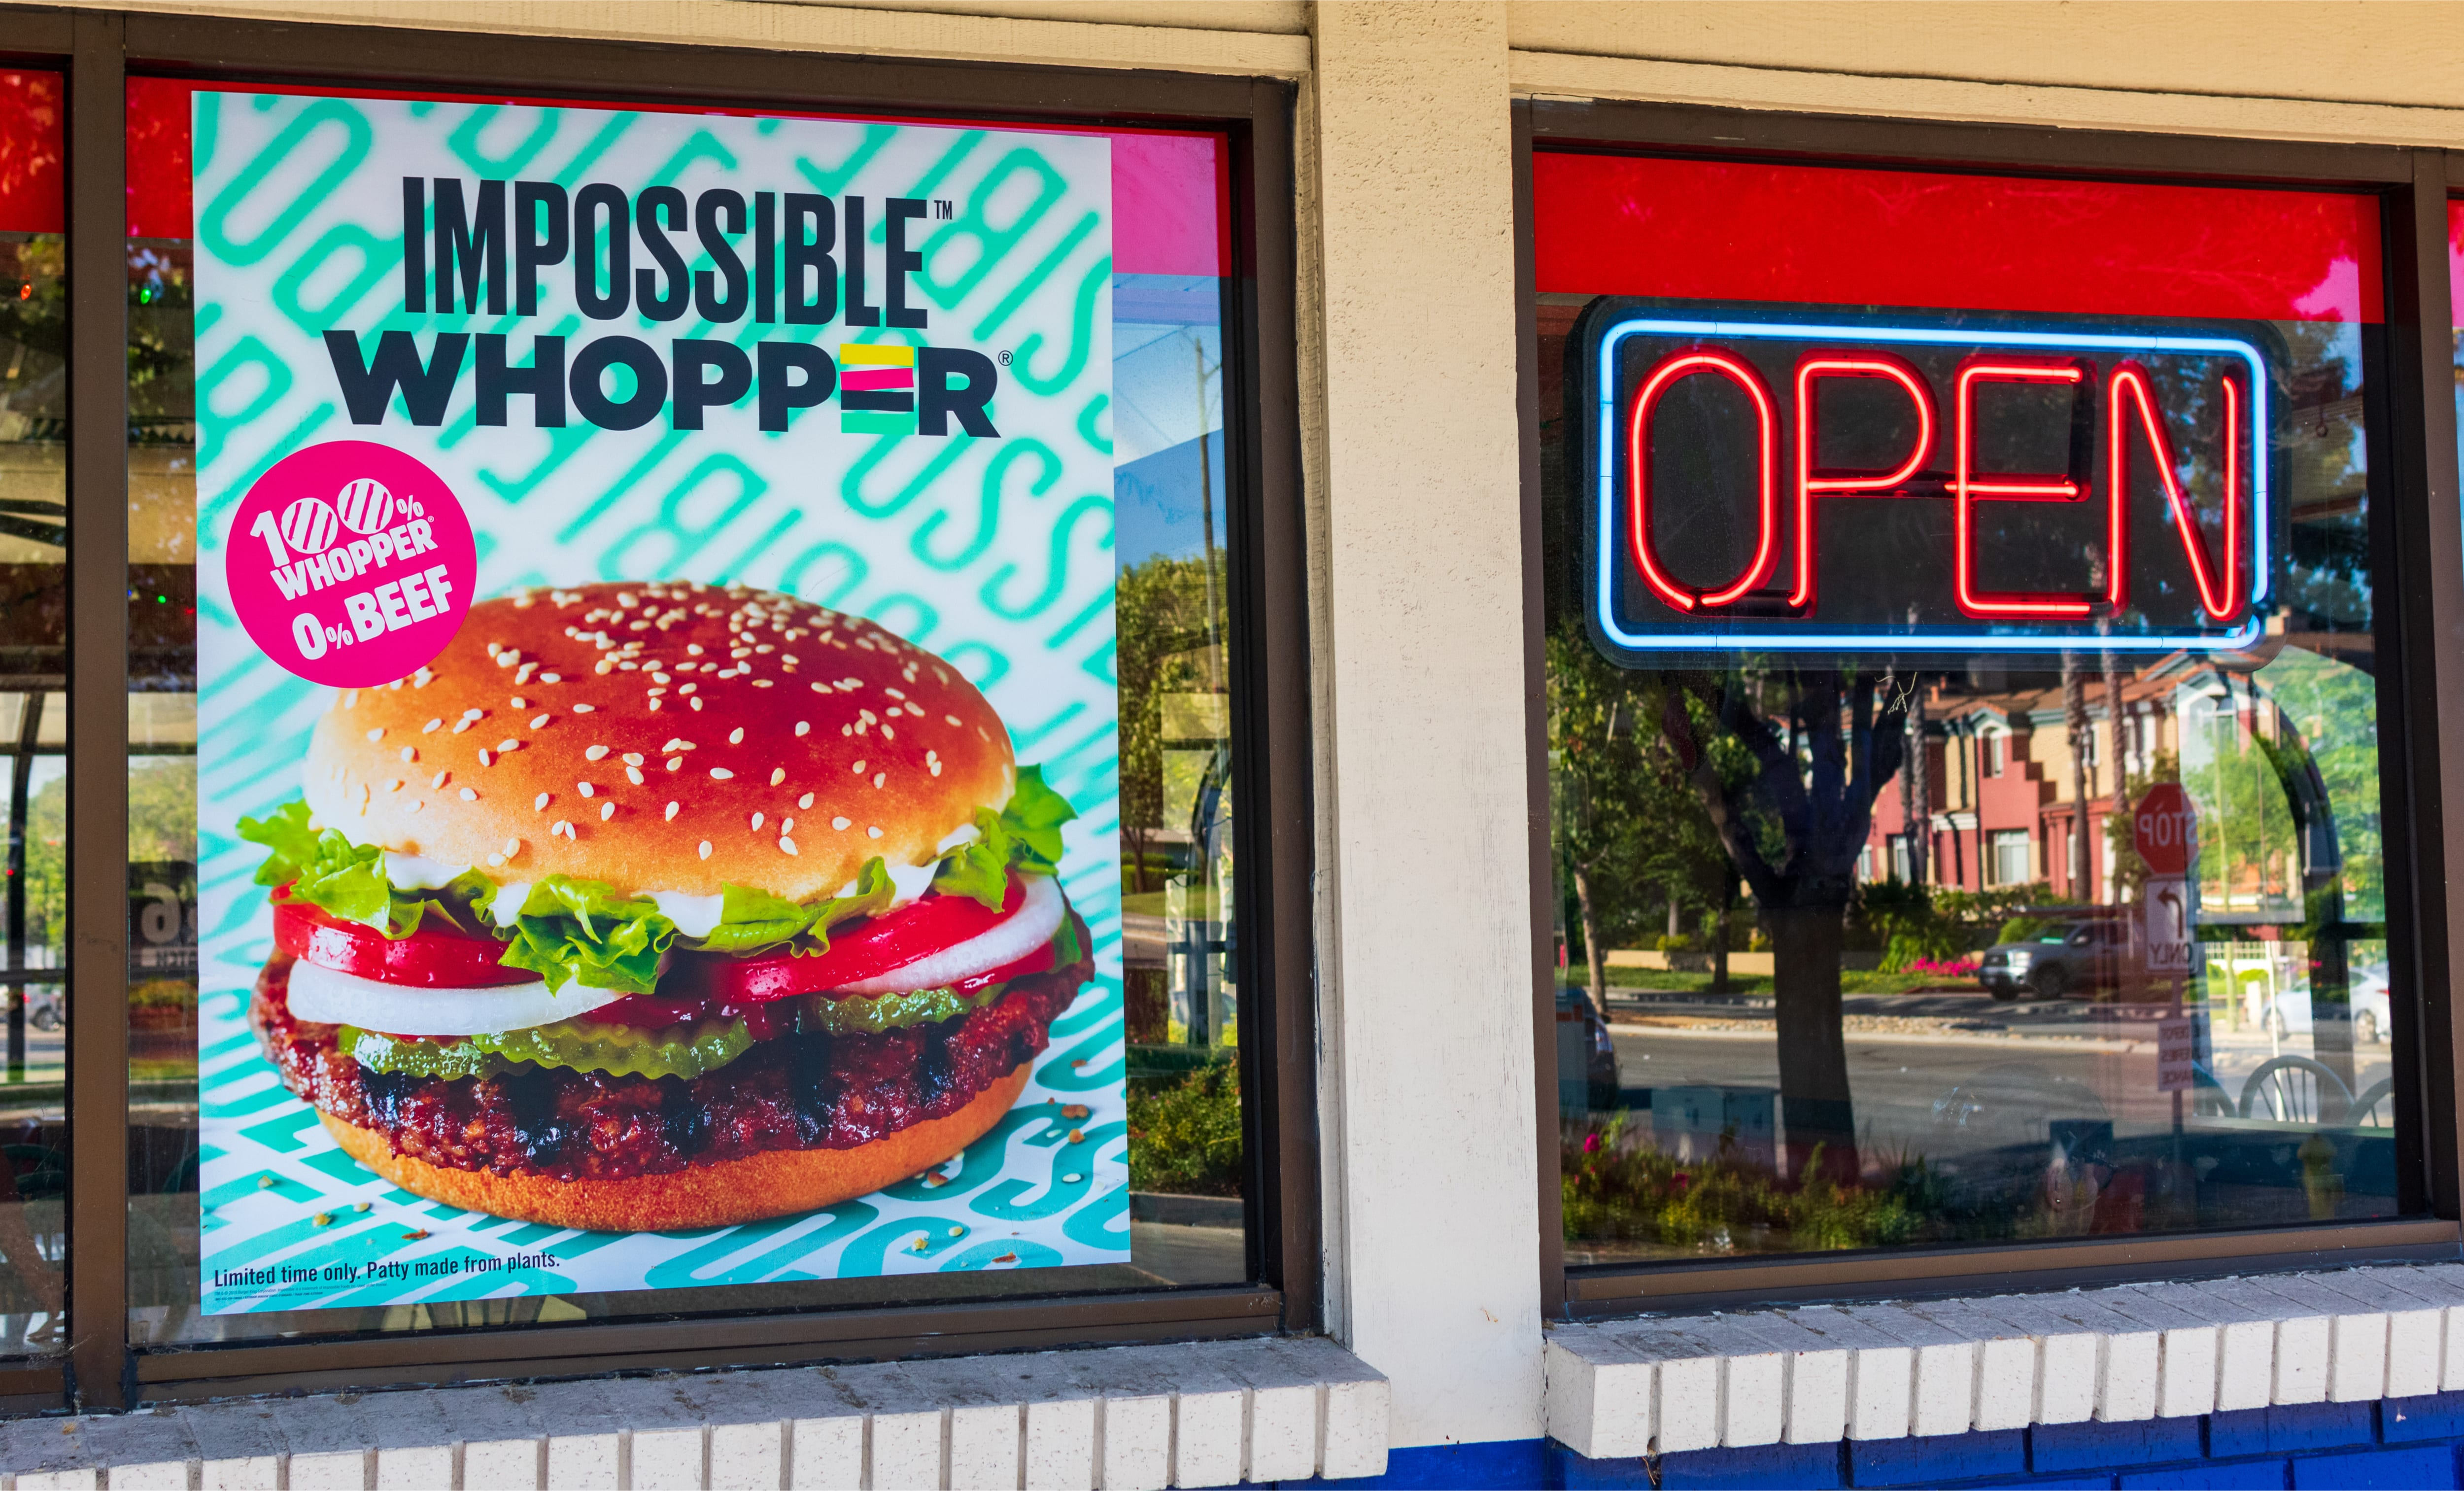 Burger King Impossible Whopper sign